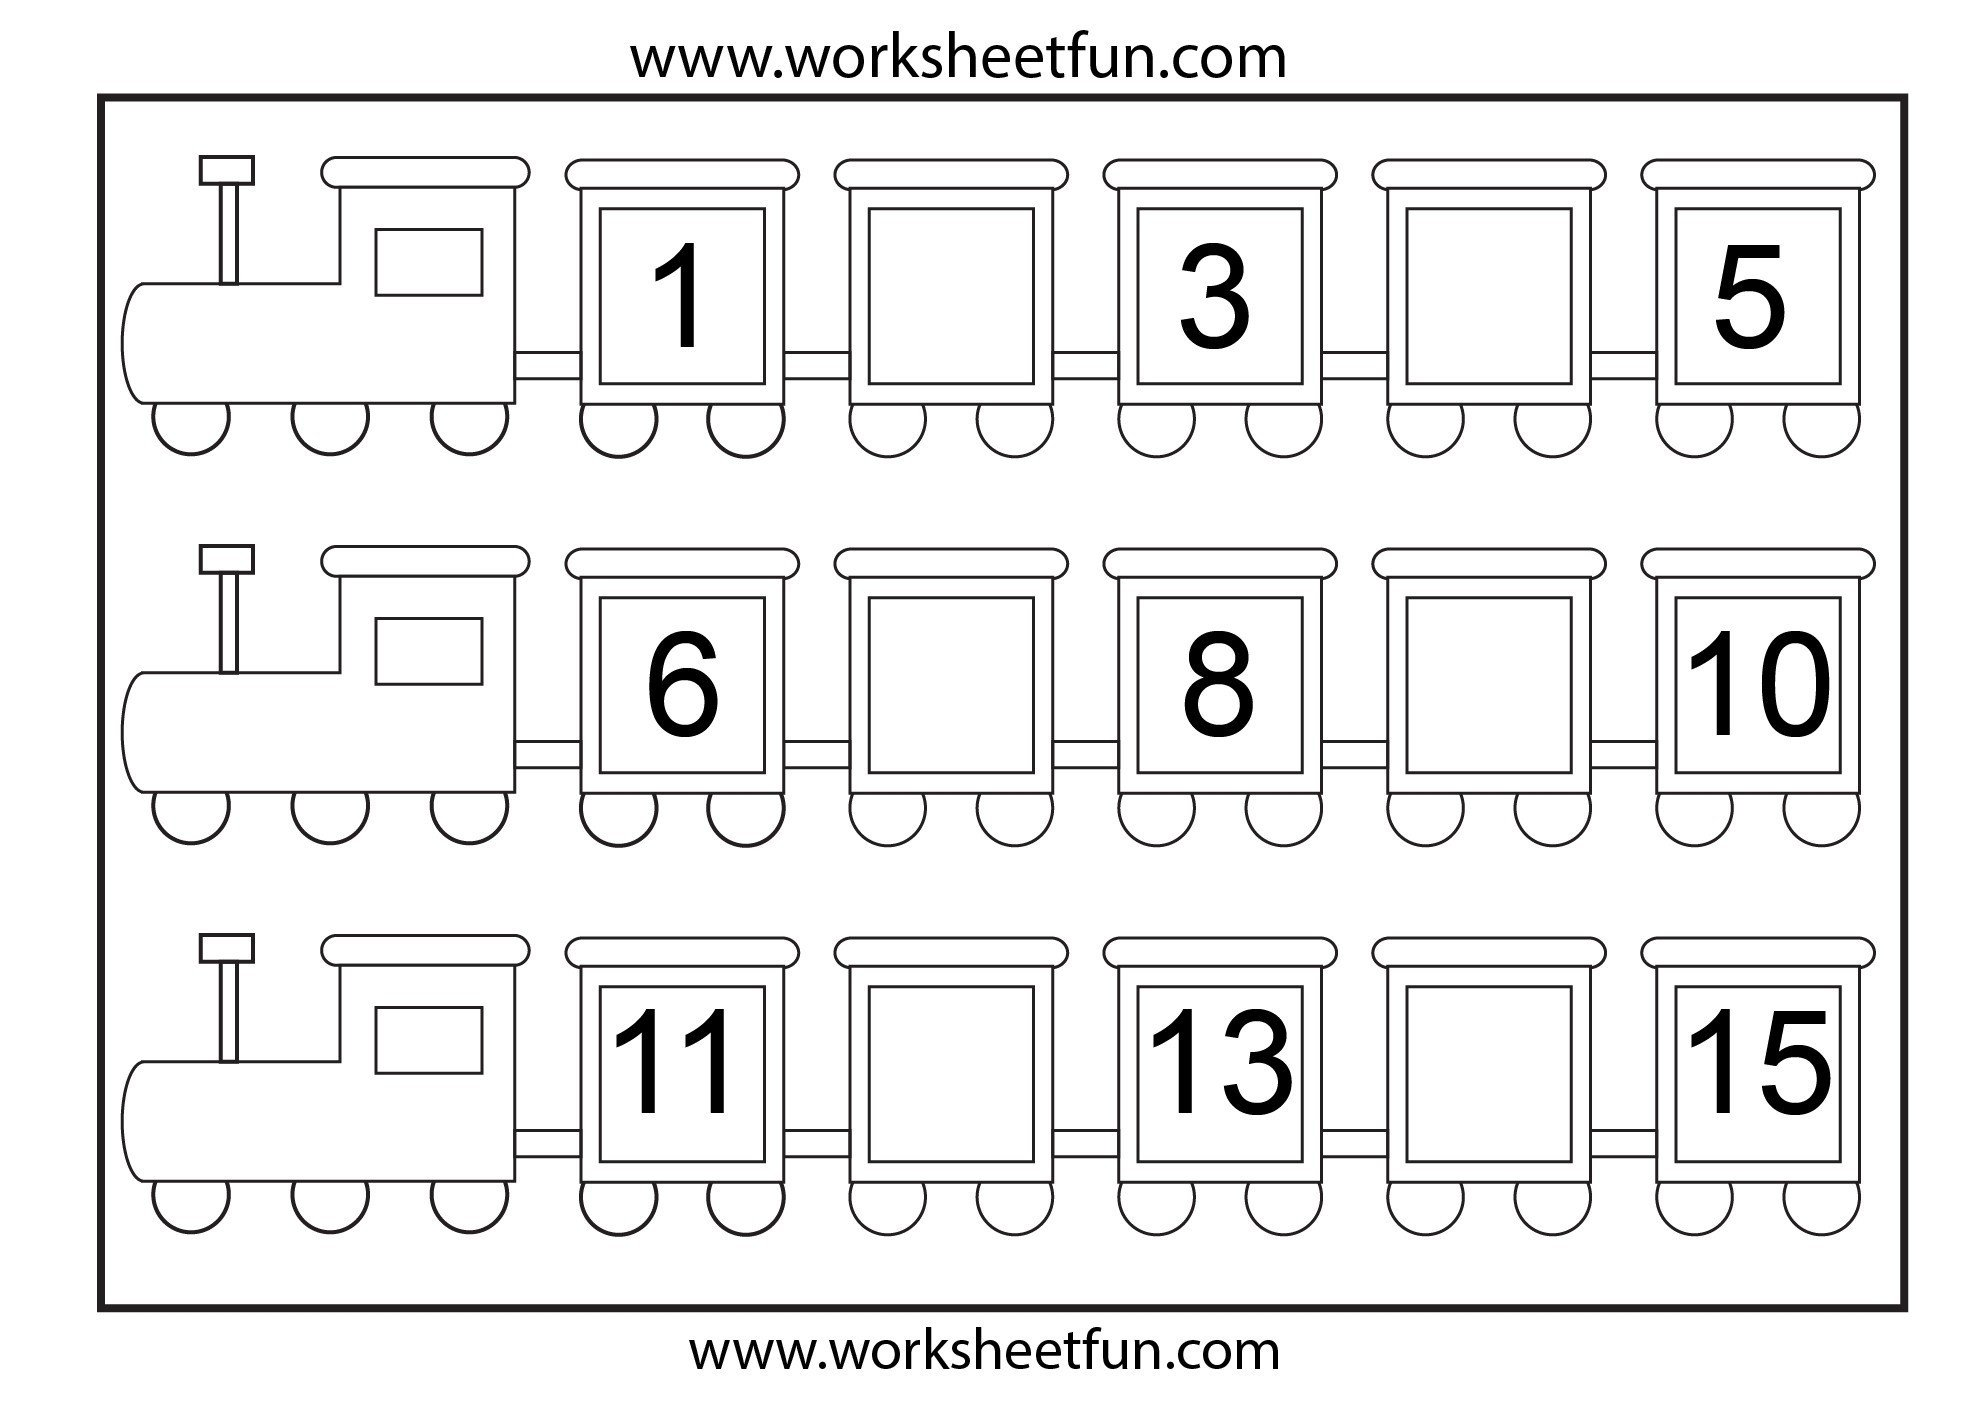 Missing Number Worksheet Kindergarten Missing Number Worksheets